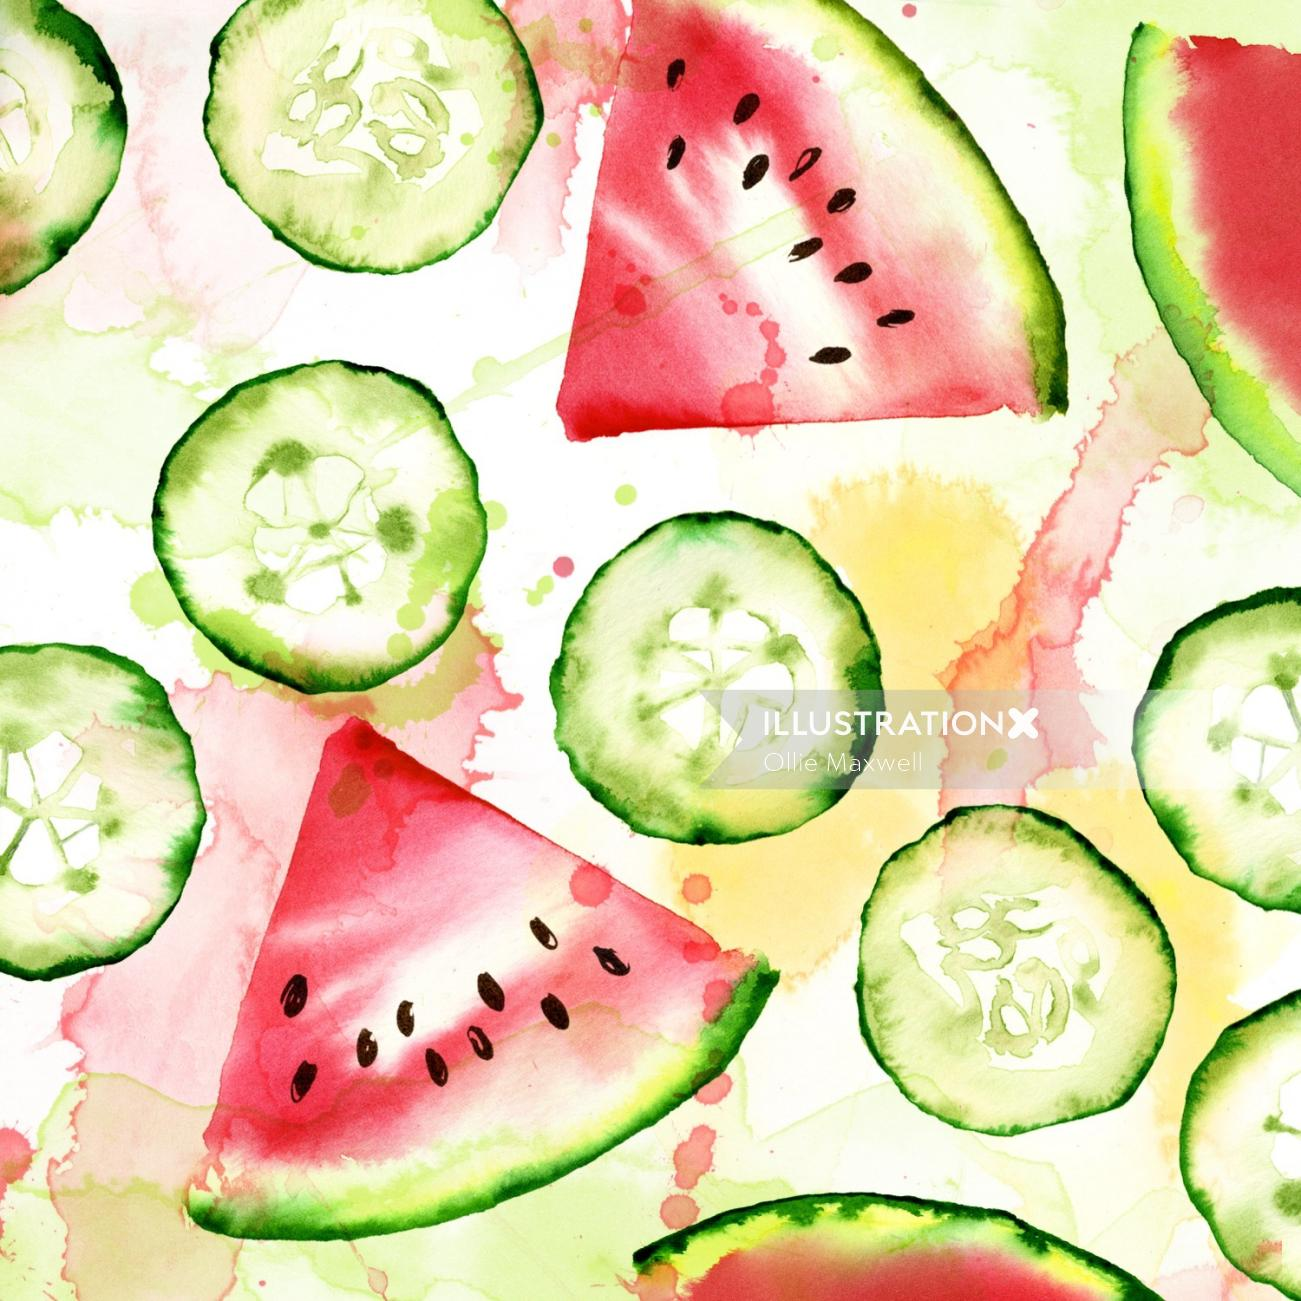 Watermelon and cucumber slices | Fruits illustration